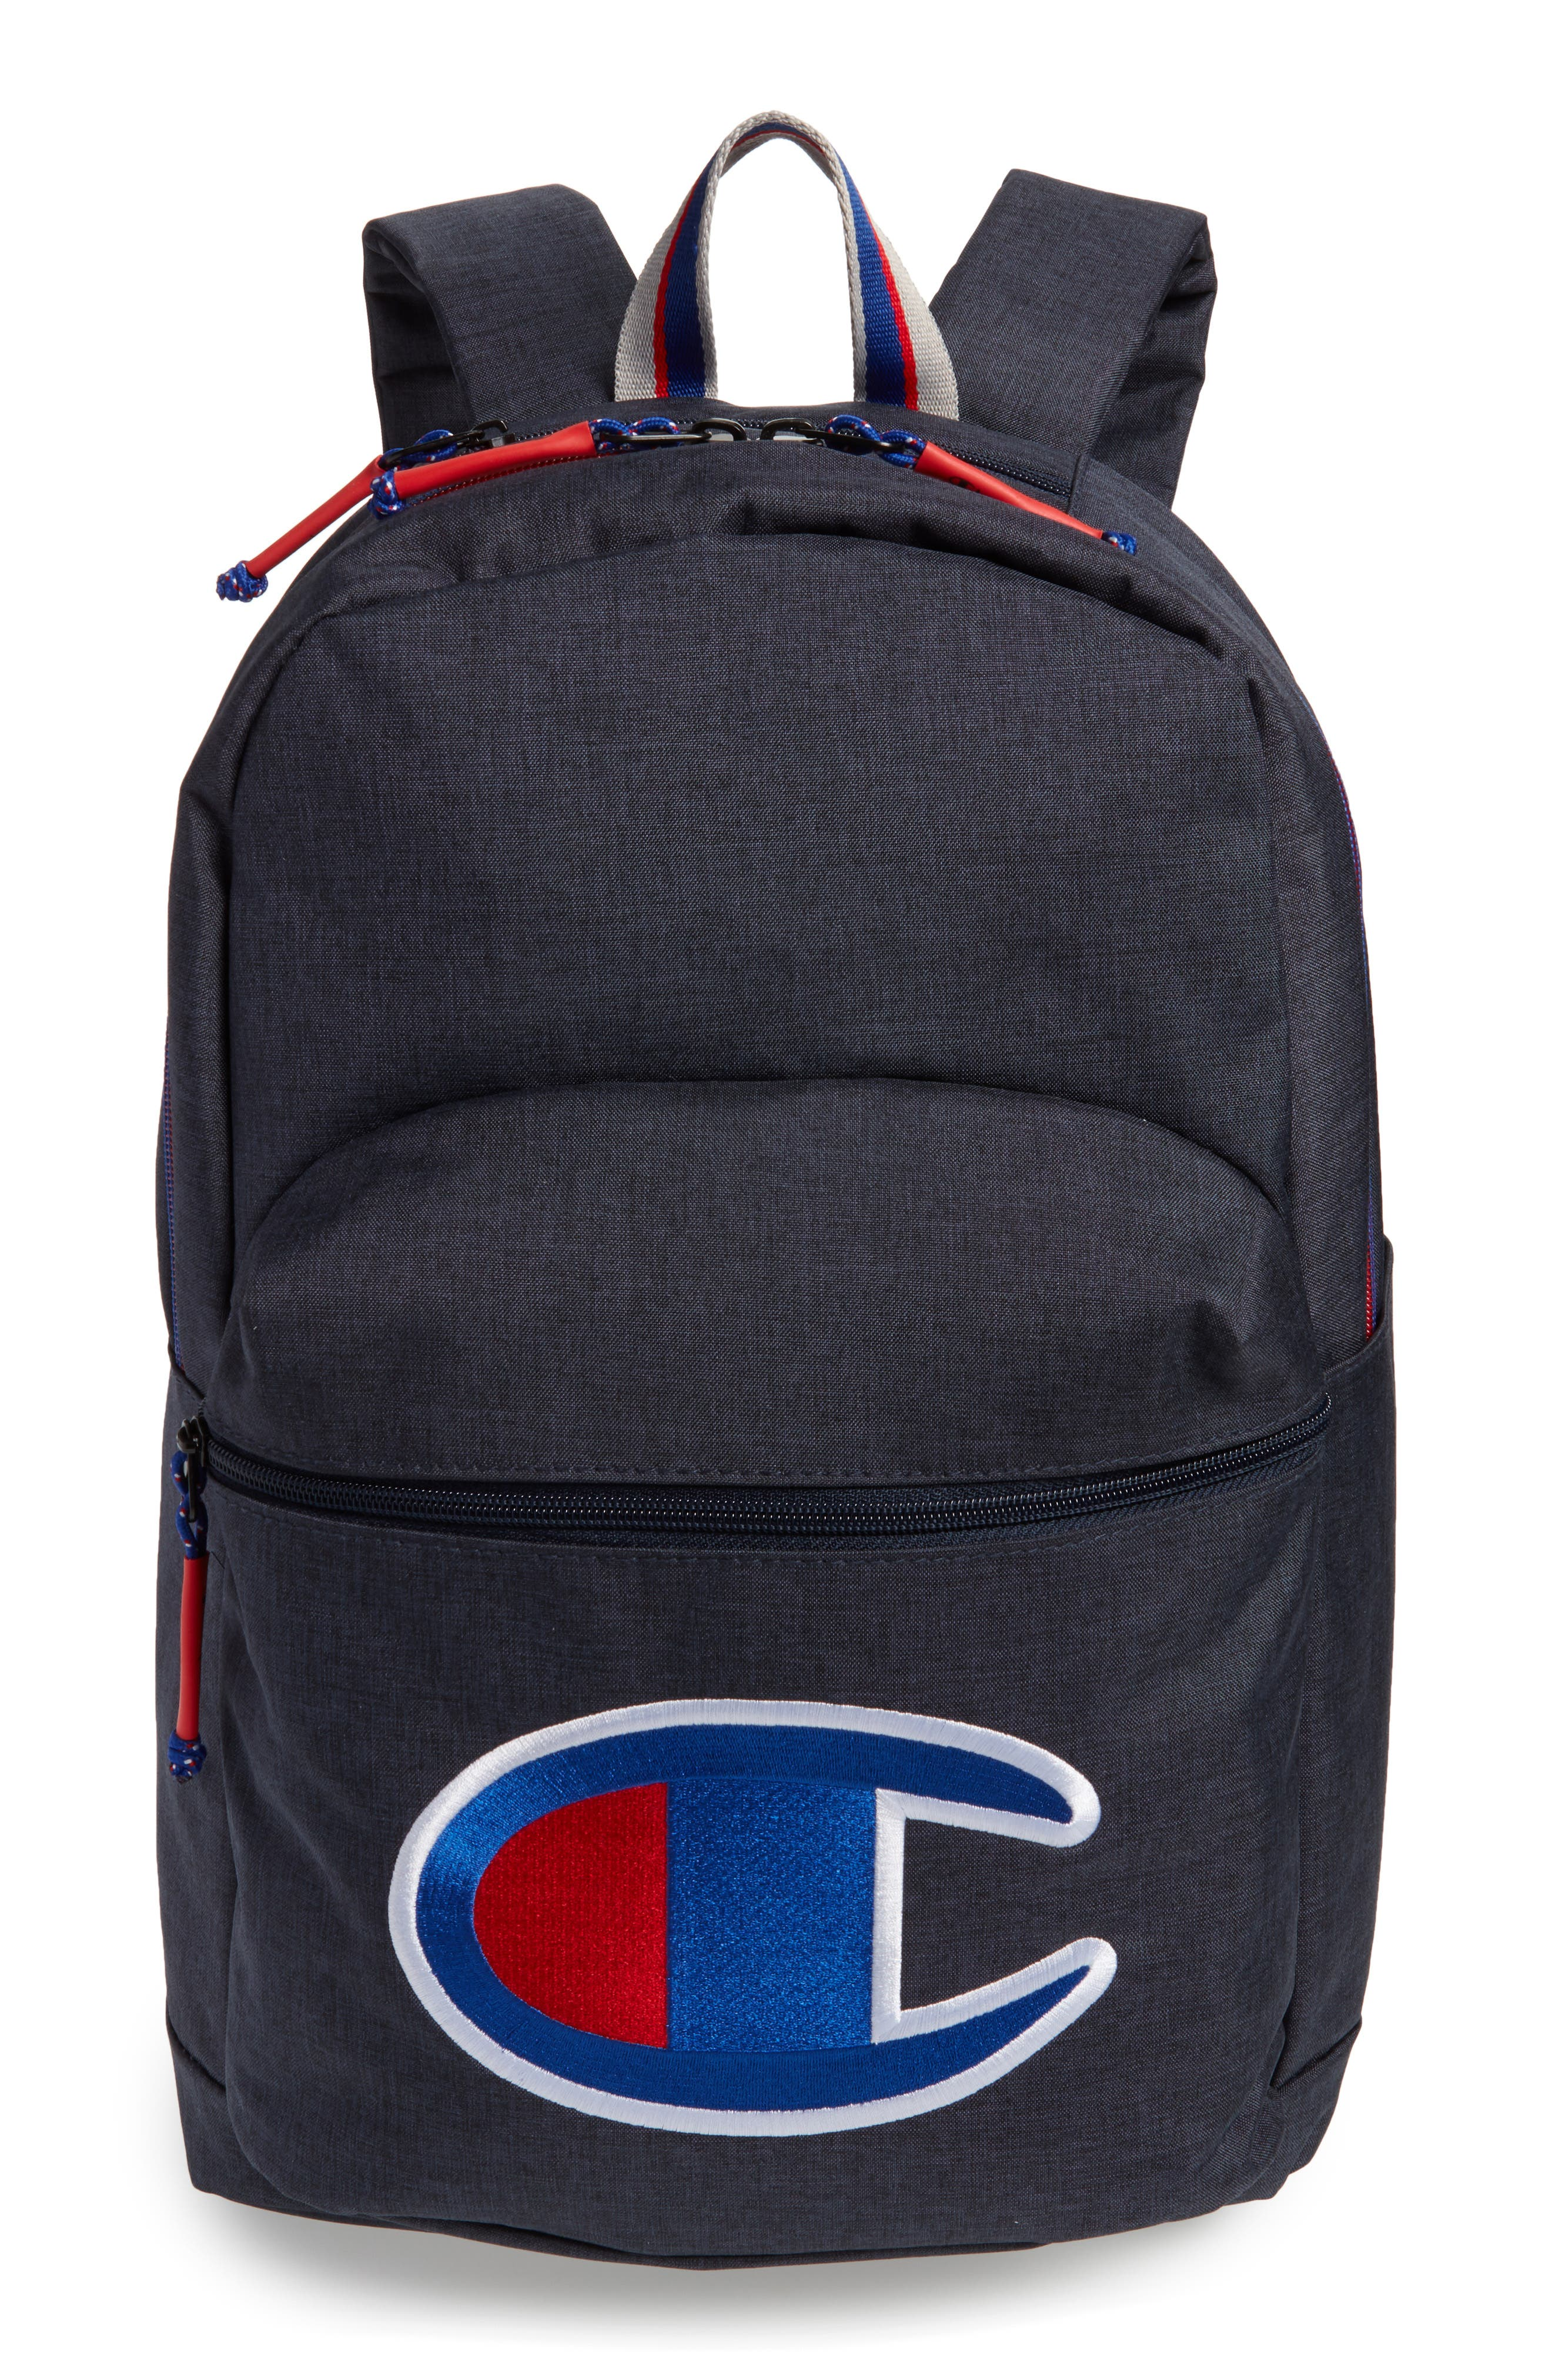 Supercize Backpack,                         Main,                         color, Navy Heather